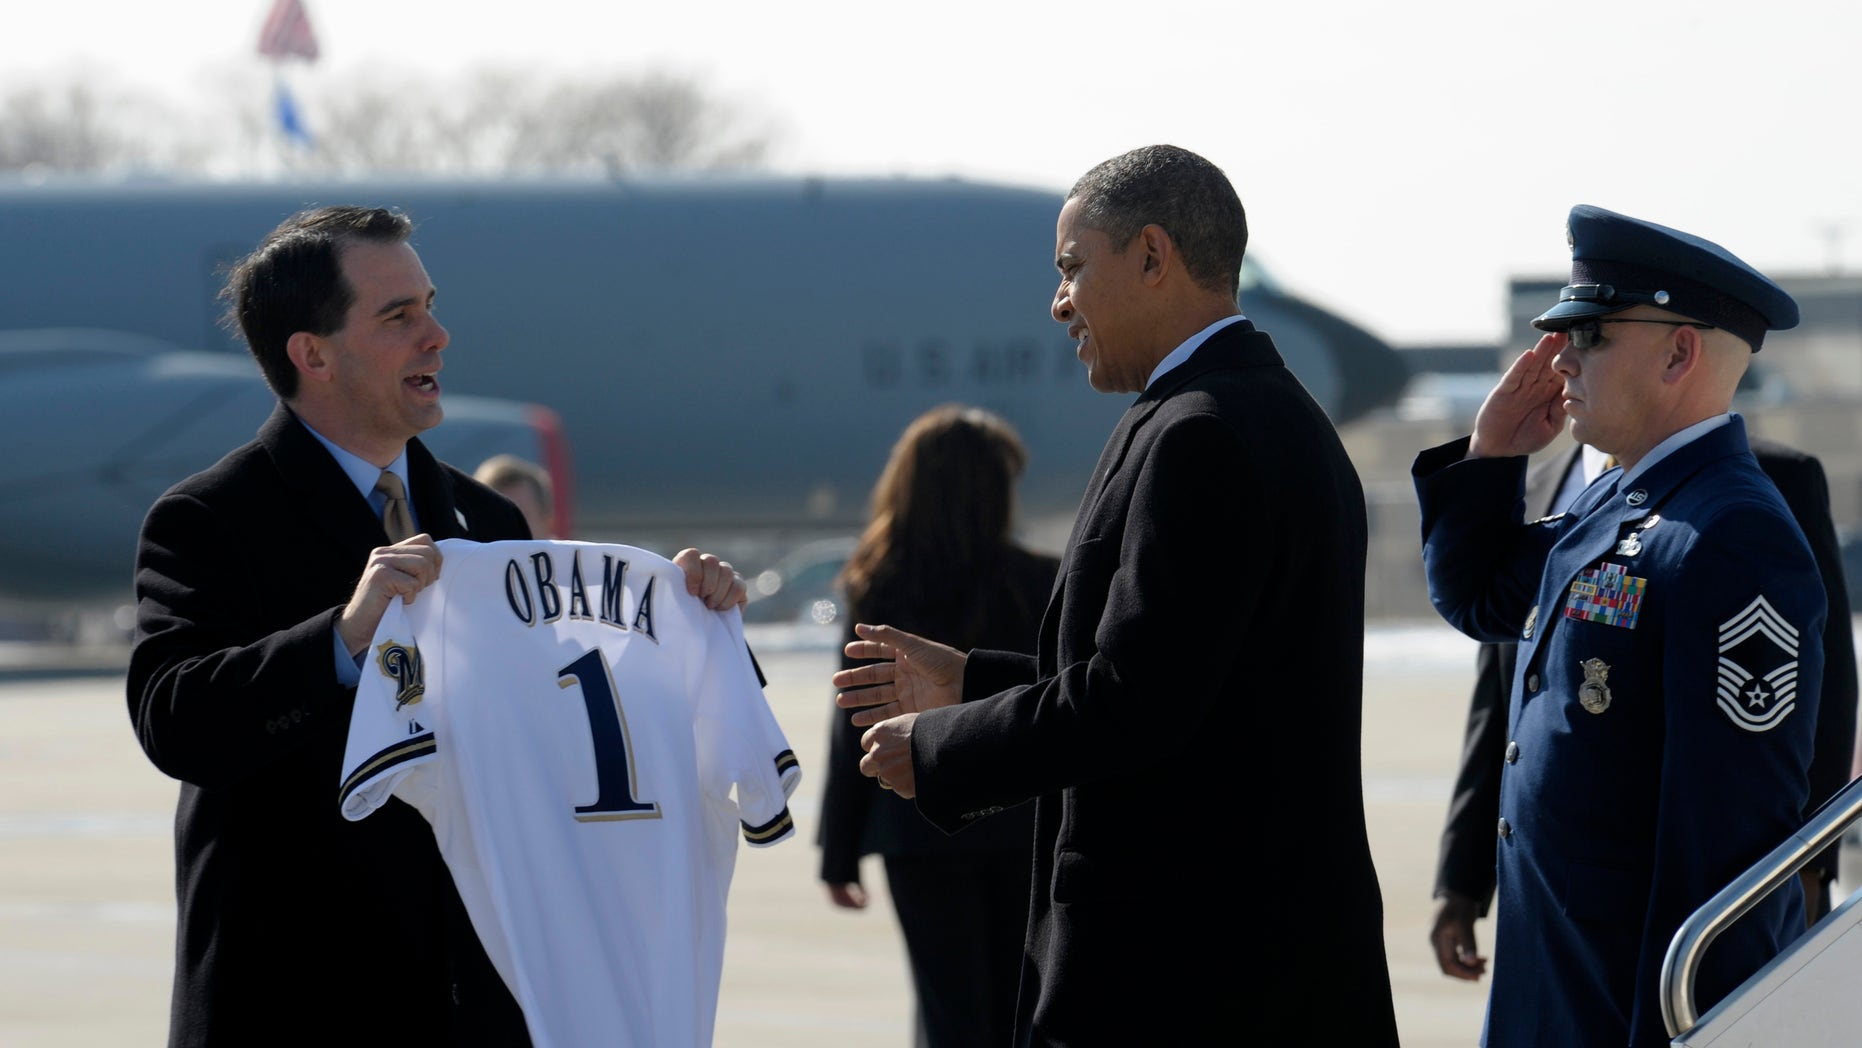 Feb. 15: Wisconsin Gov. Scott Walker presents President Barack Obama with a Milwaukee Brewers baseball jersey upon his arrival at General Mitchell International Airport in Milwaukee.